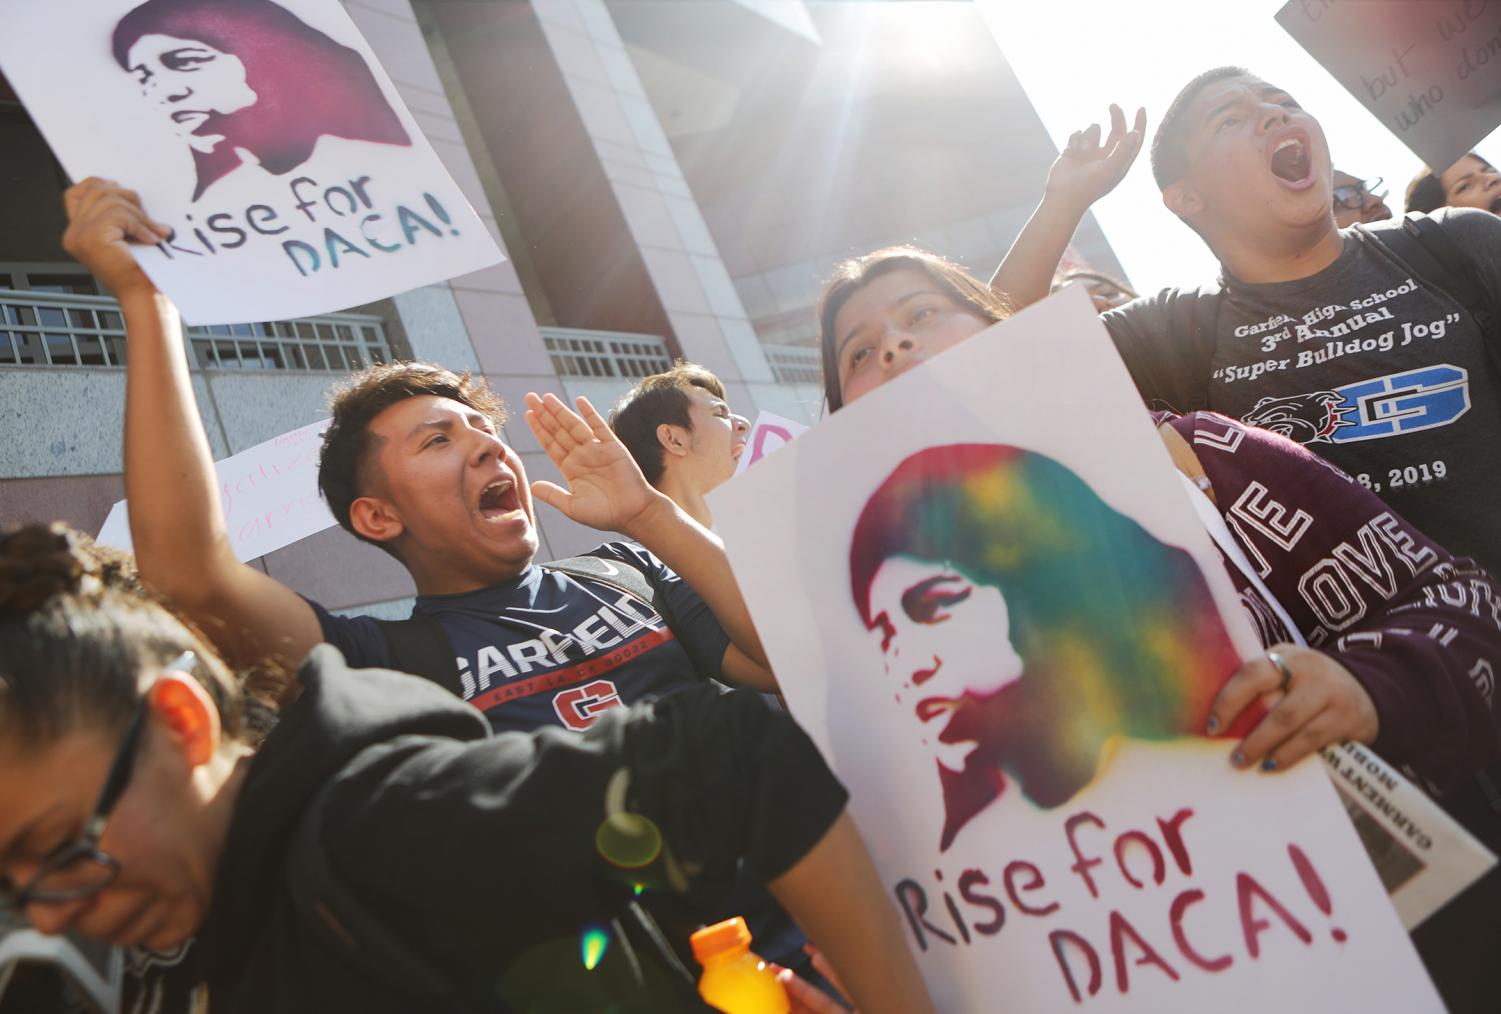 Students and supporters of DACA rally in Los Angeles on November 12, 2019. The protest was in response towards the Supreme Court hearings.